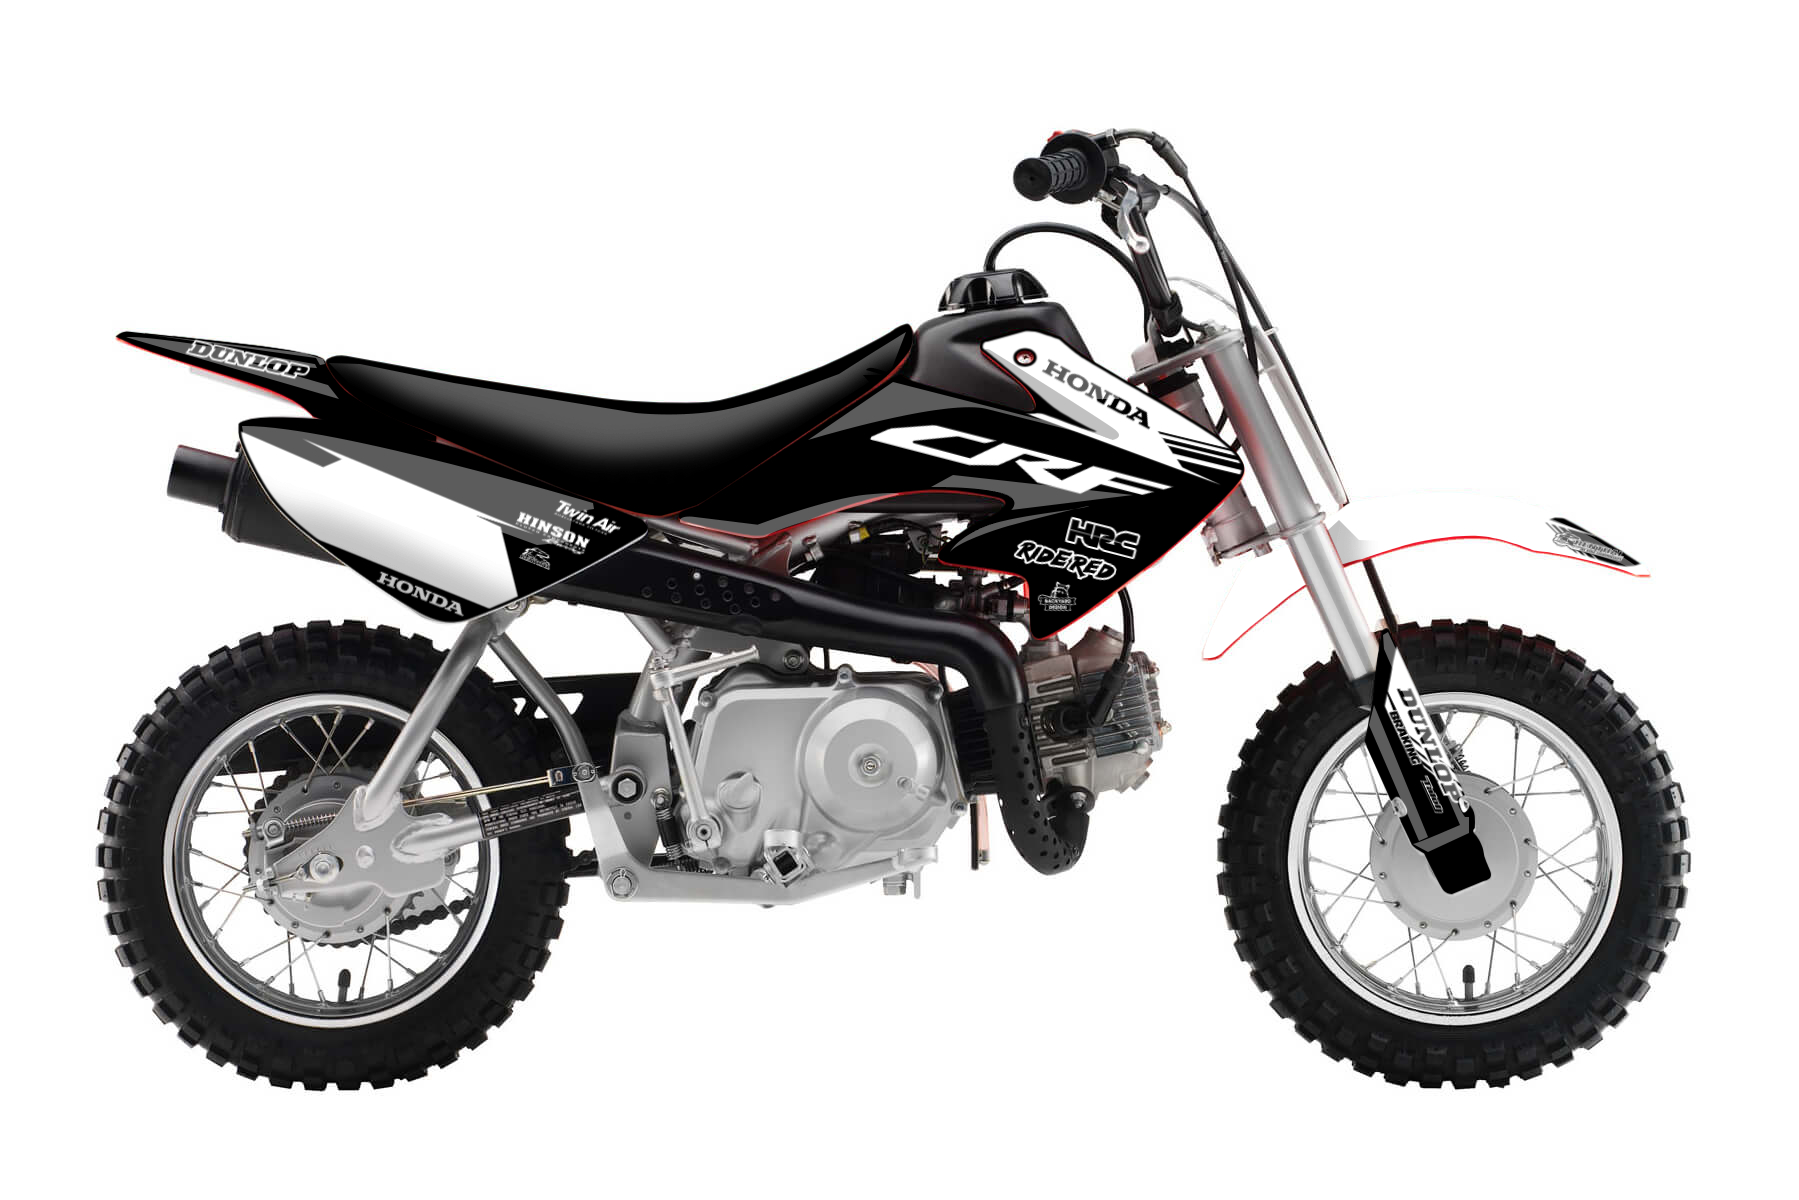 Honda Pitbike CRF 50 MX Graphic Kits  The CRF 50 delivers your little one everything he or she needs to start a long and ambitious offroad career. Solidly built and with a look to match the bigger sisters of this bike.